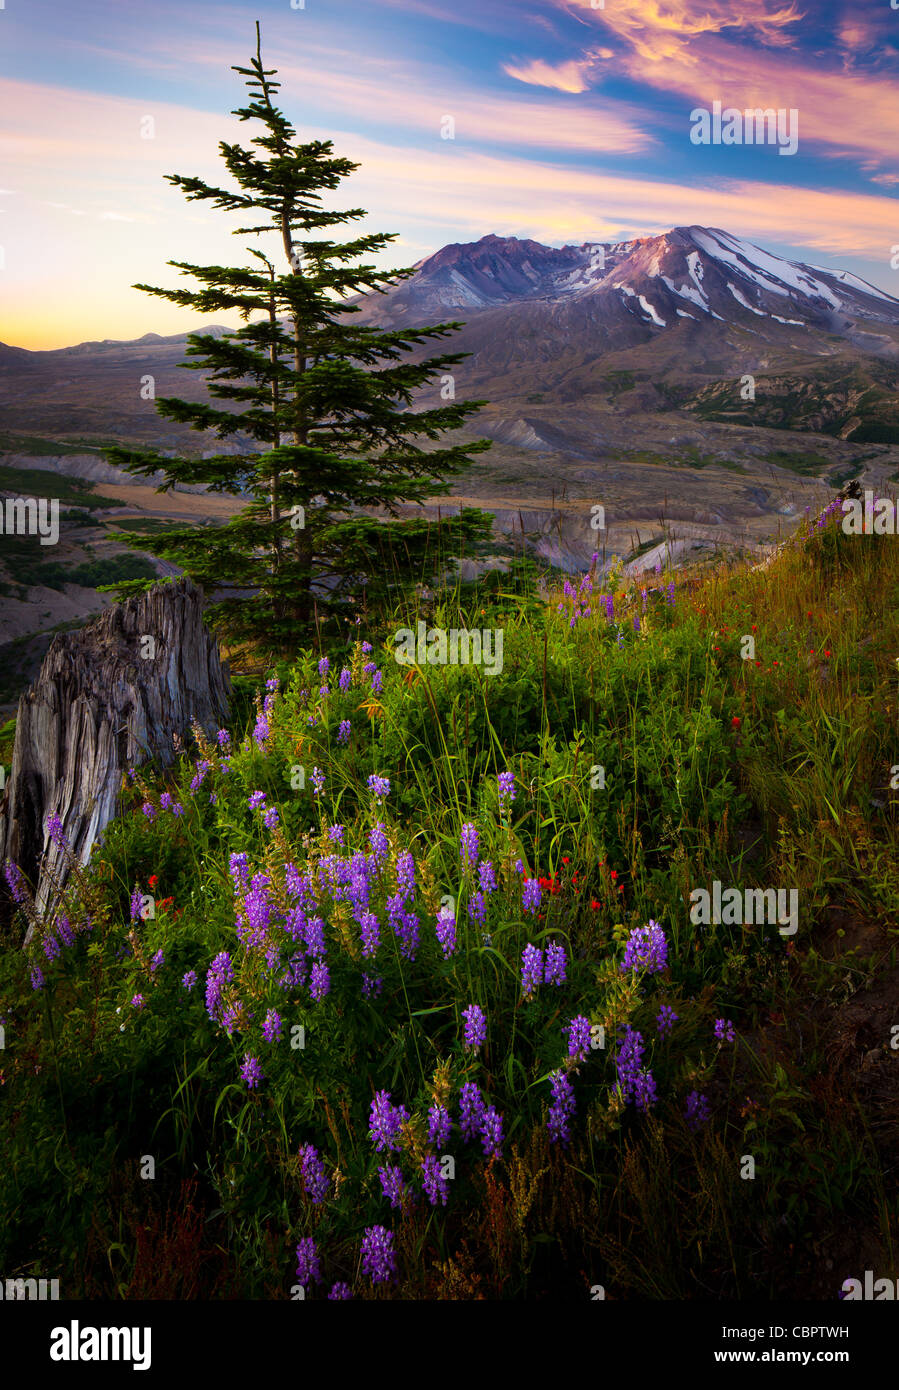 Sunrise at Mount Saint Helens National Volcanic Monument with summer wildflowers in the foreground - Stock Image